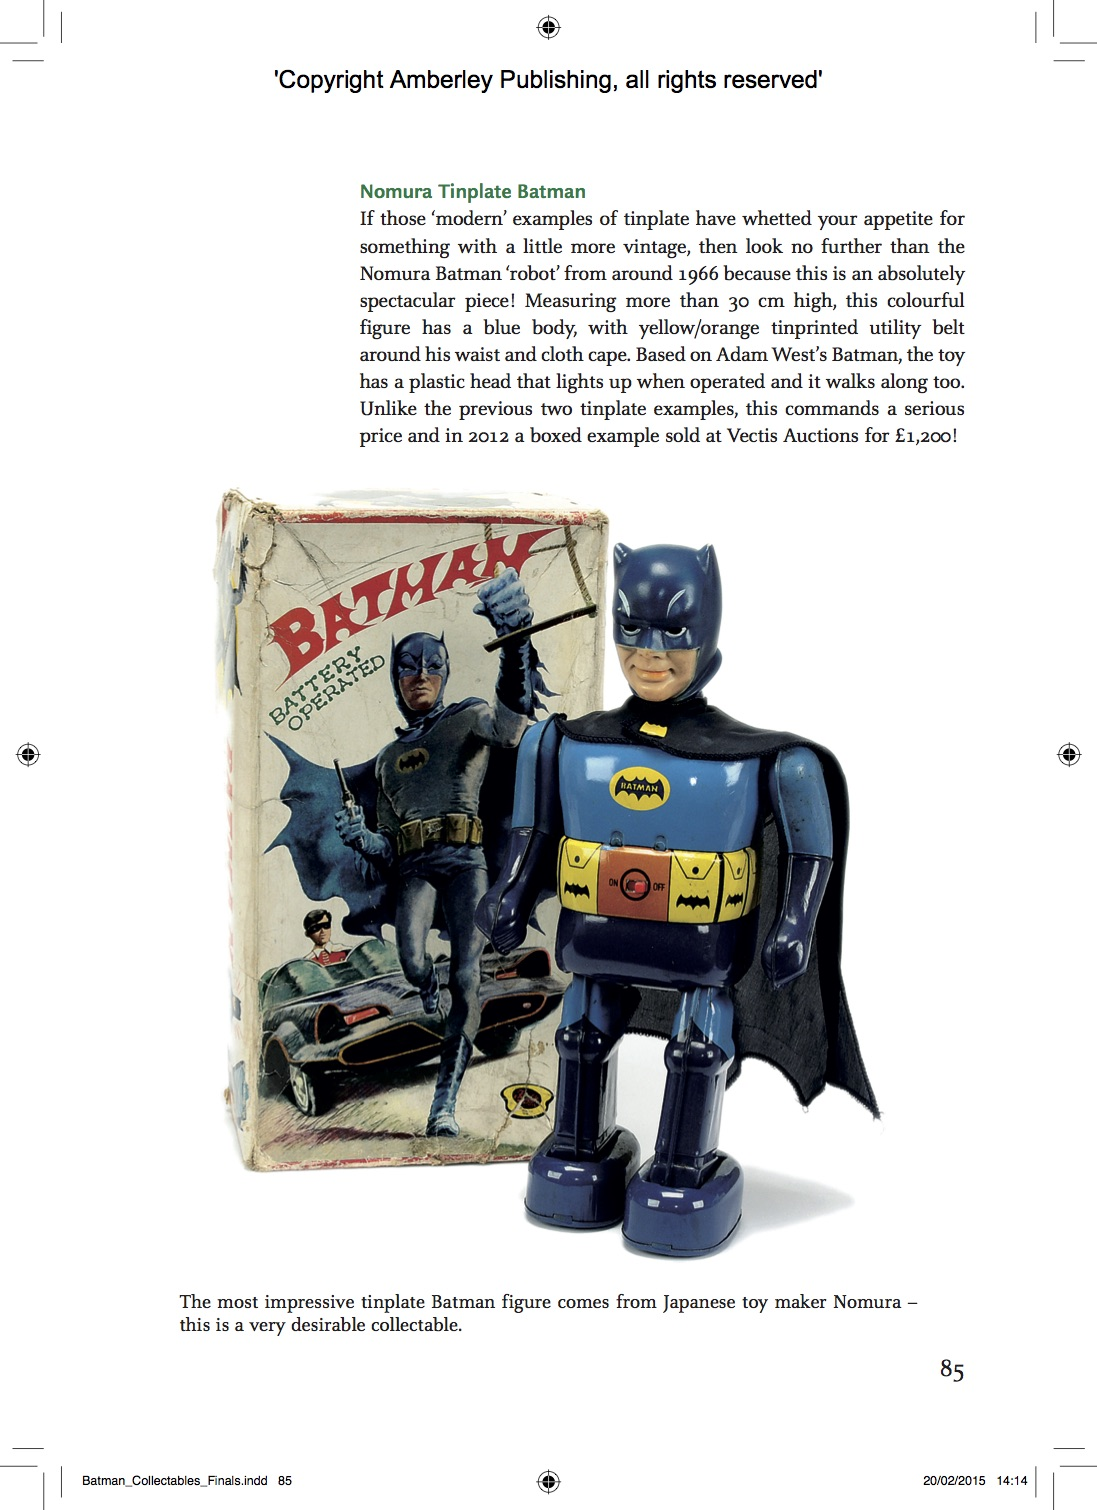 Batman Collectibles Merged File [TXT]-6